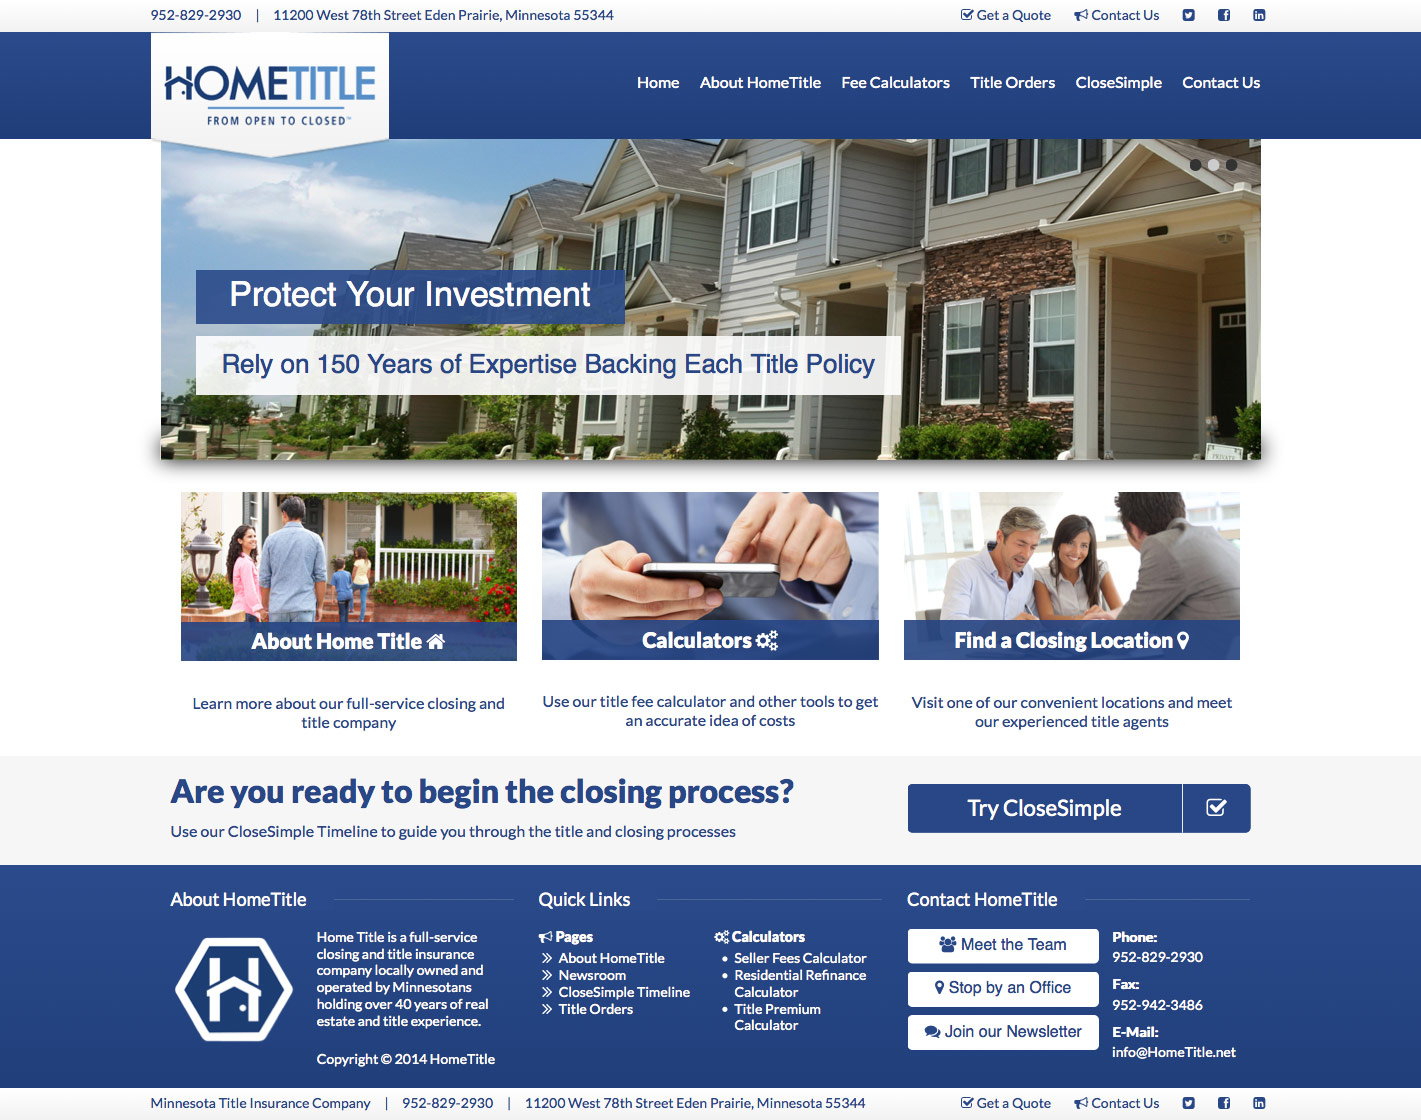 Home Title Site